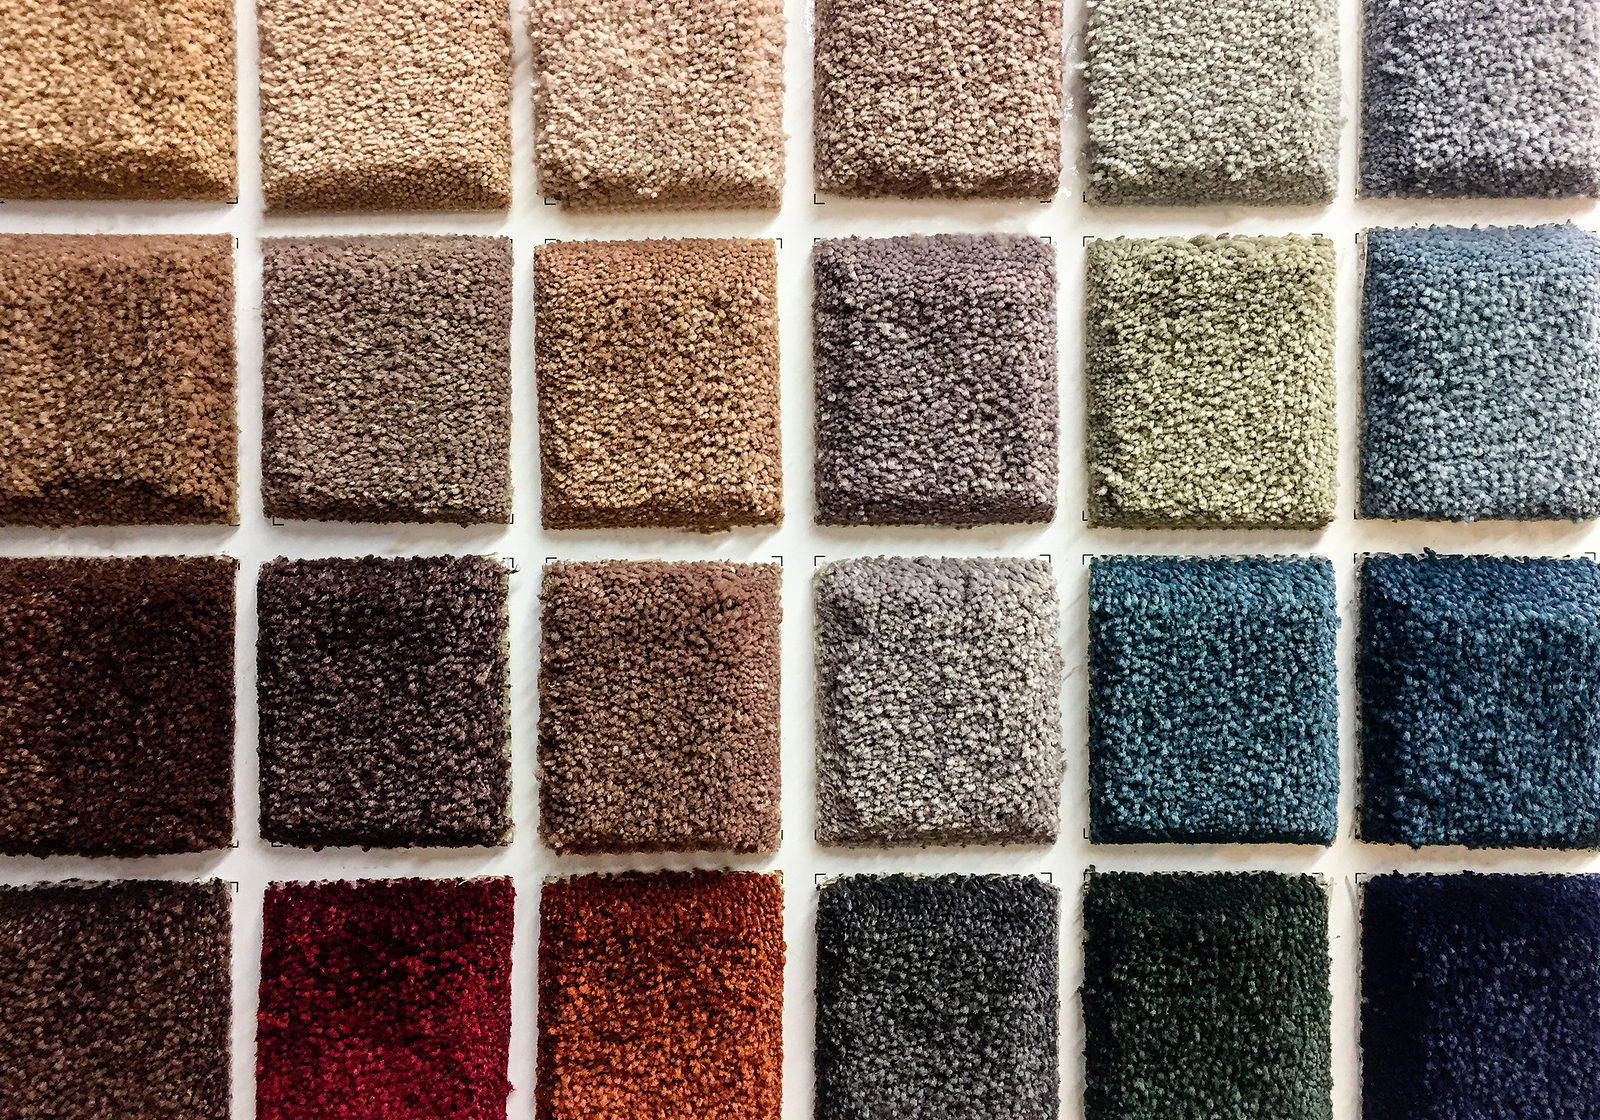 Carpet Concept. Shop carpets. Picker carpet. Carpet samples in the store. carpet made of looped and sheared fibers, carpet color samples